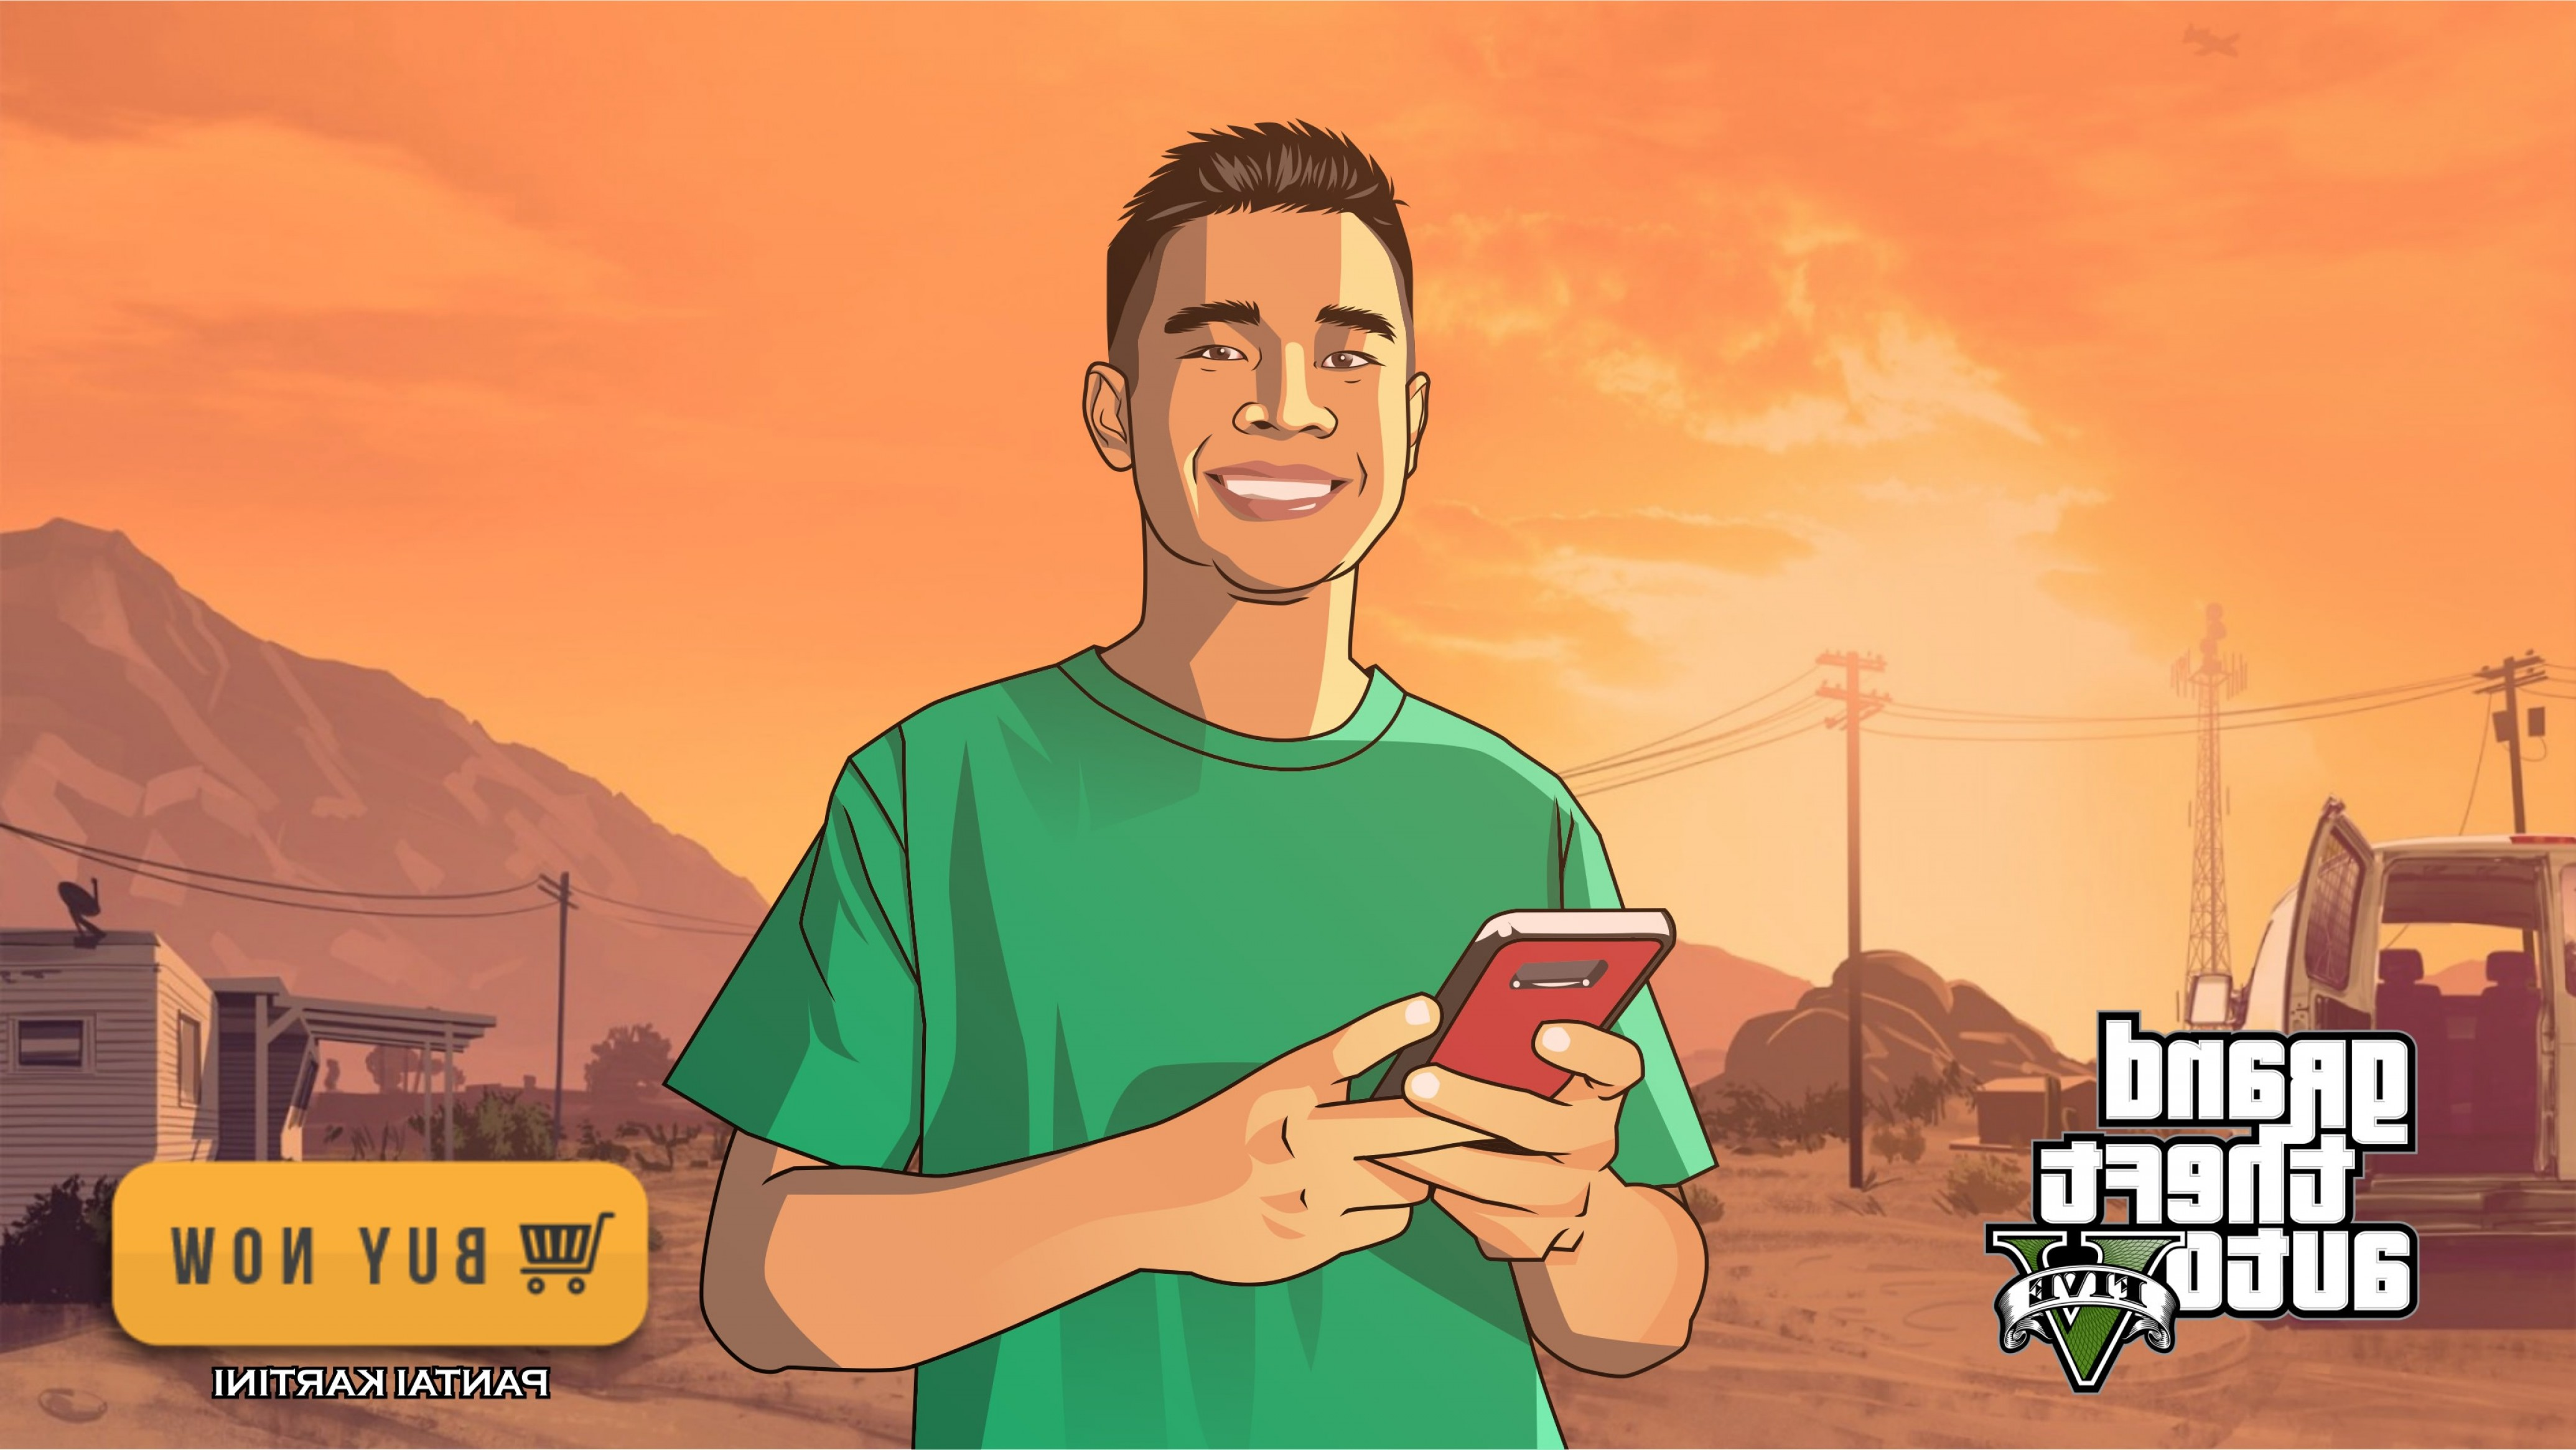 GTA Photo To Vector: Design Vector Cartoons Or Caricatures With Gta Style